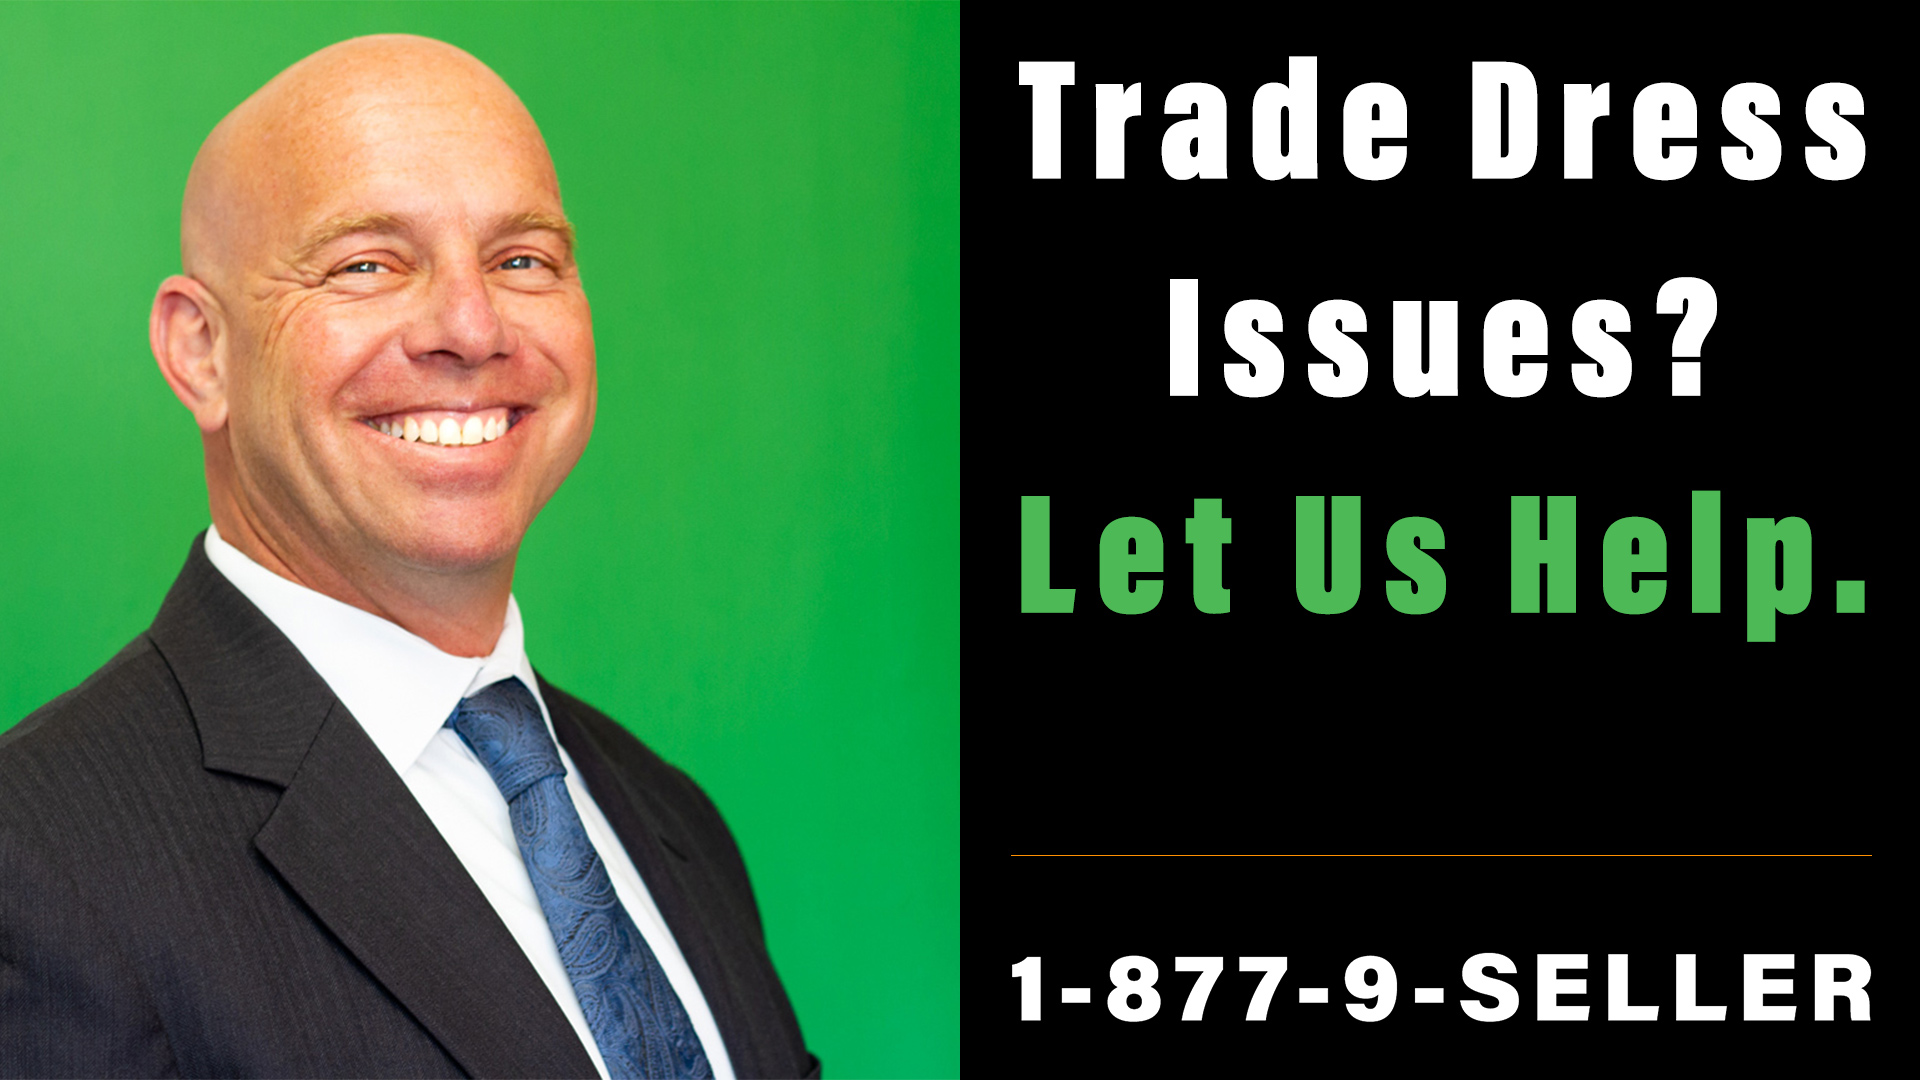 trade dress issues